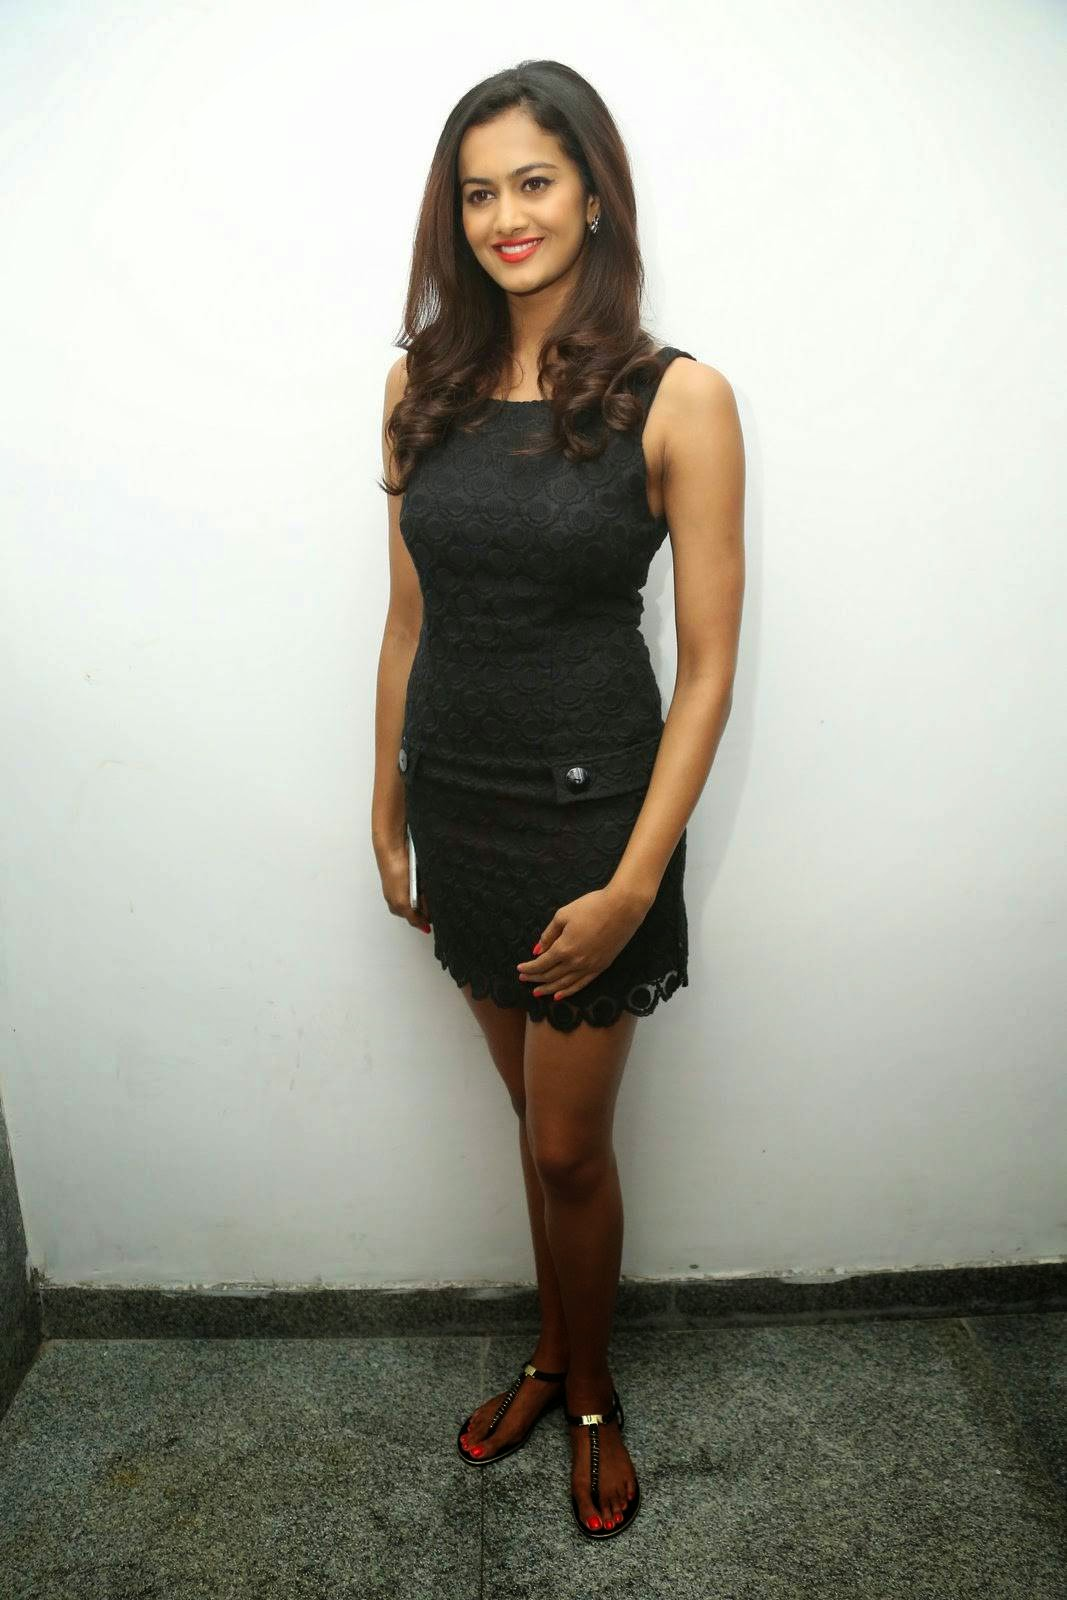 Tollywood Actress Shubra Aiyappa, Shubra Aiyappa Sexy Hot Figure images in Black Dress